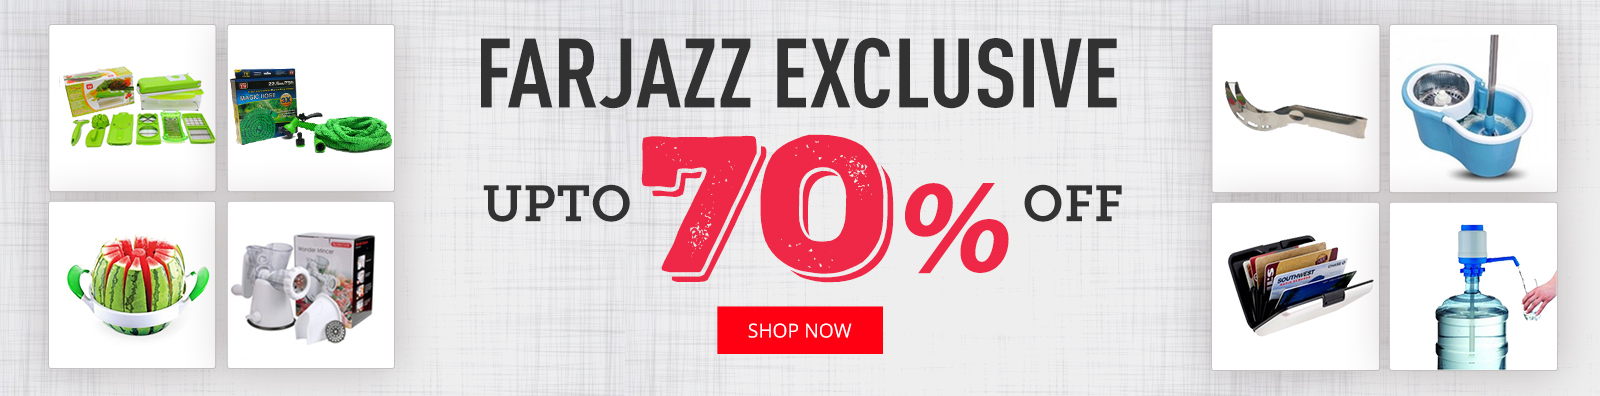 Farjazz Exclusive Products